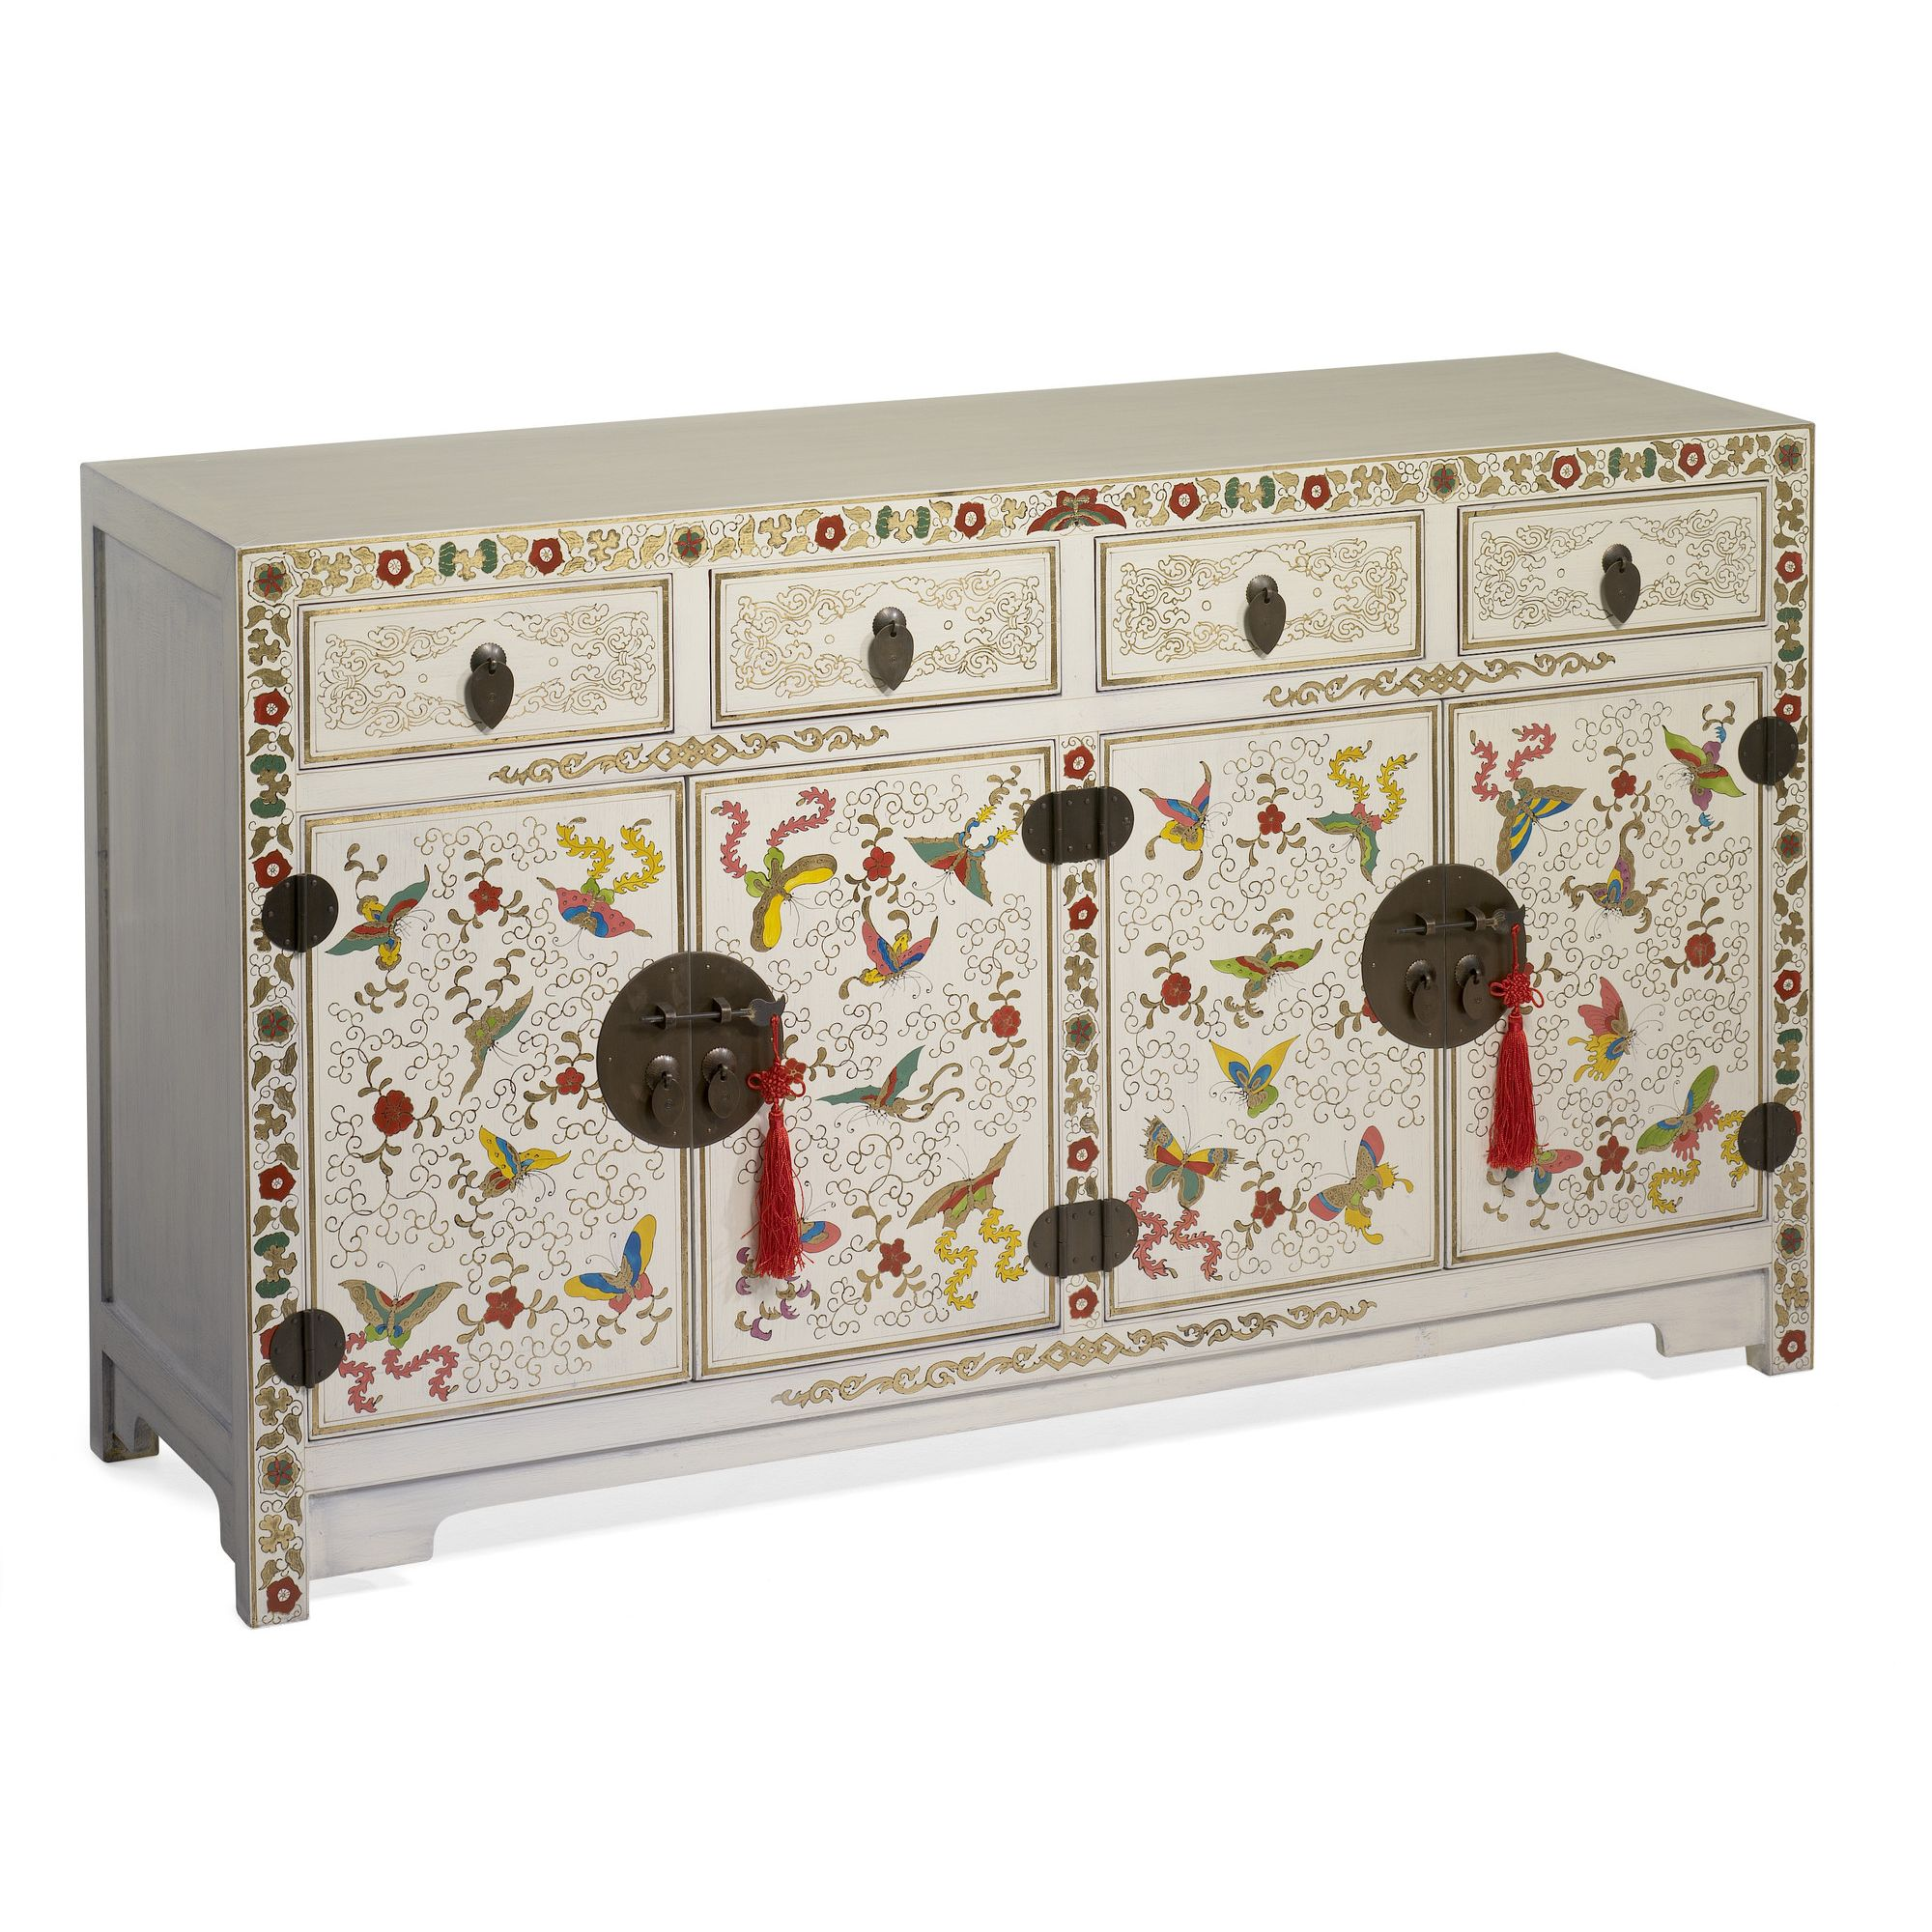 Shimu Chinese Classical Shanxi Butterfly Sideboard - Cream Lacquer at Tesco Direct